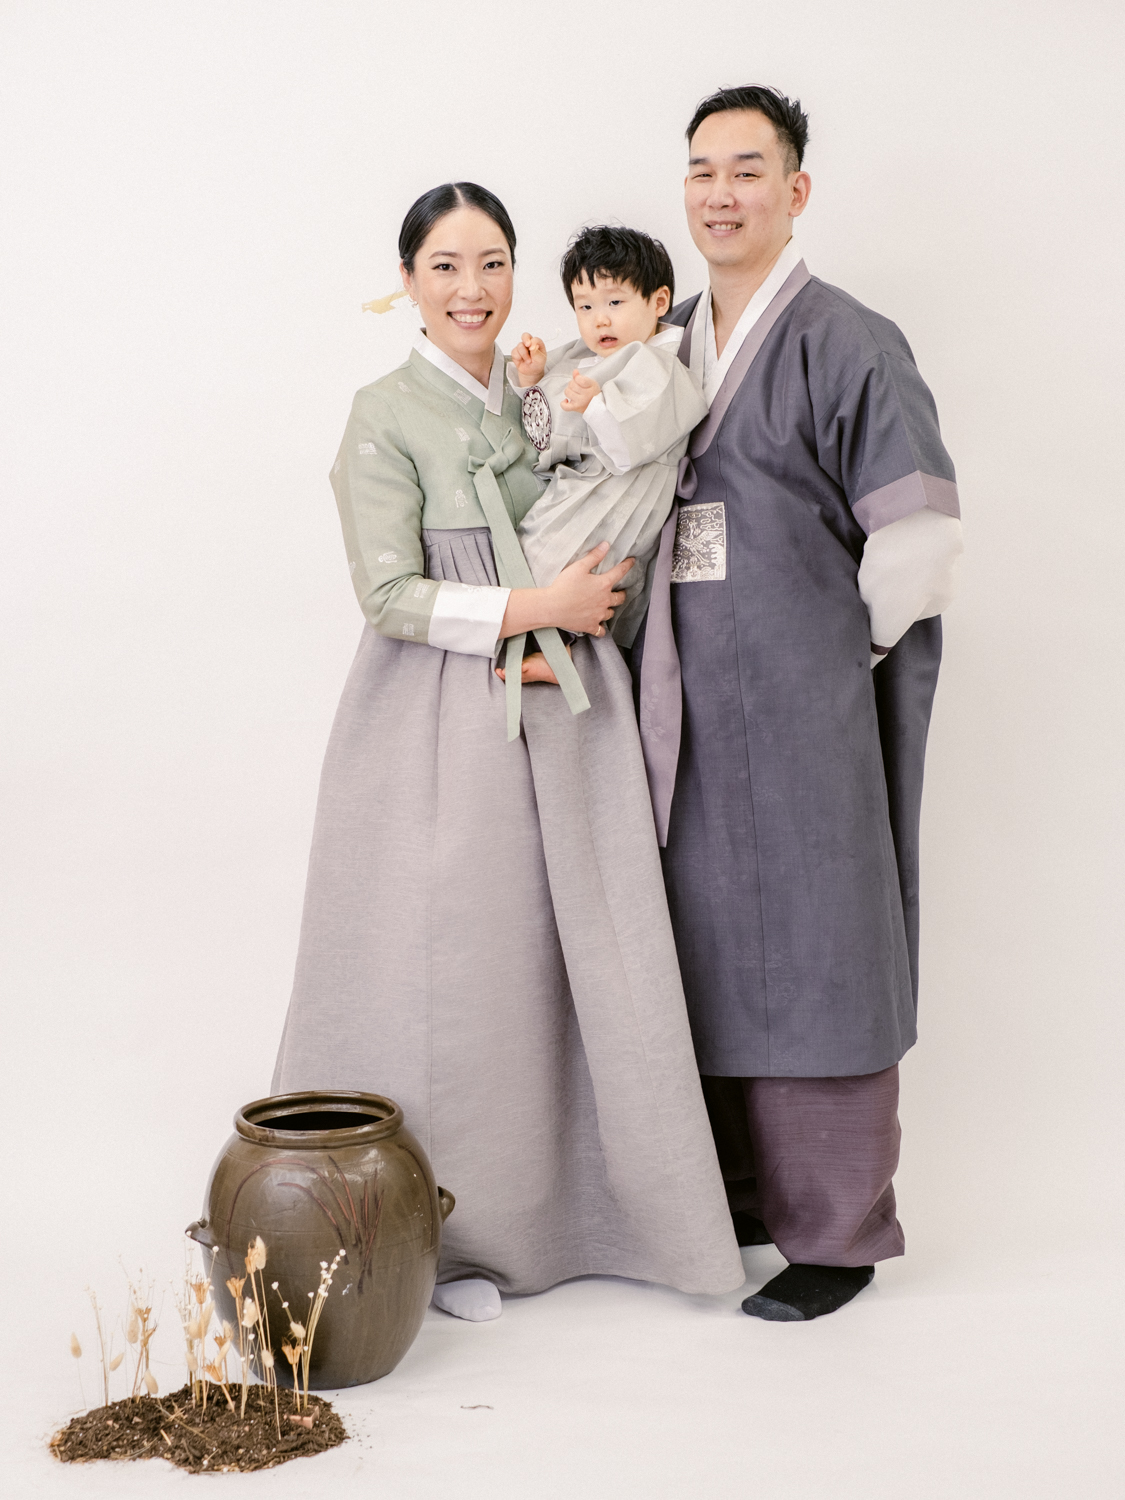 How to Celebrate Dol - Korean First Birthday Traditions - Family Portrait